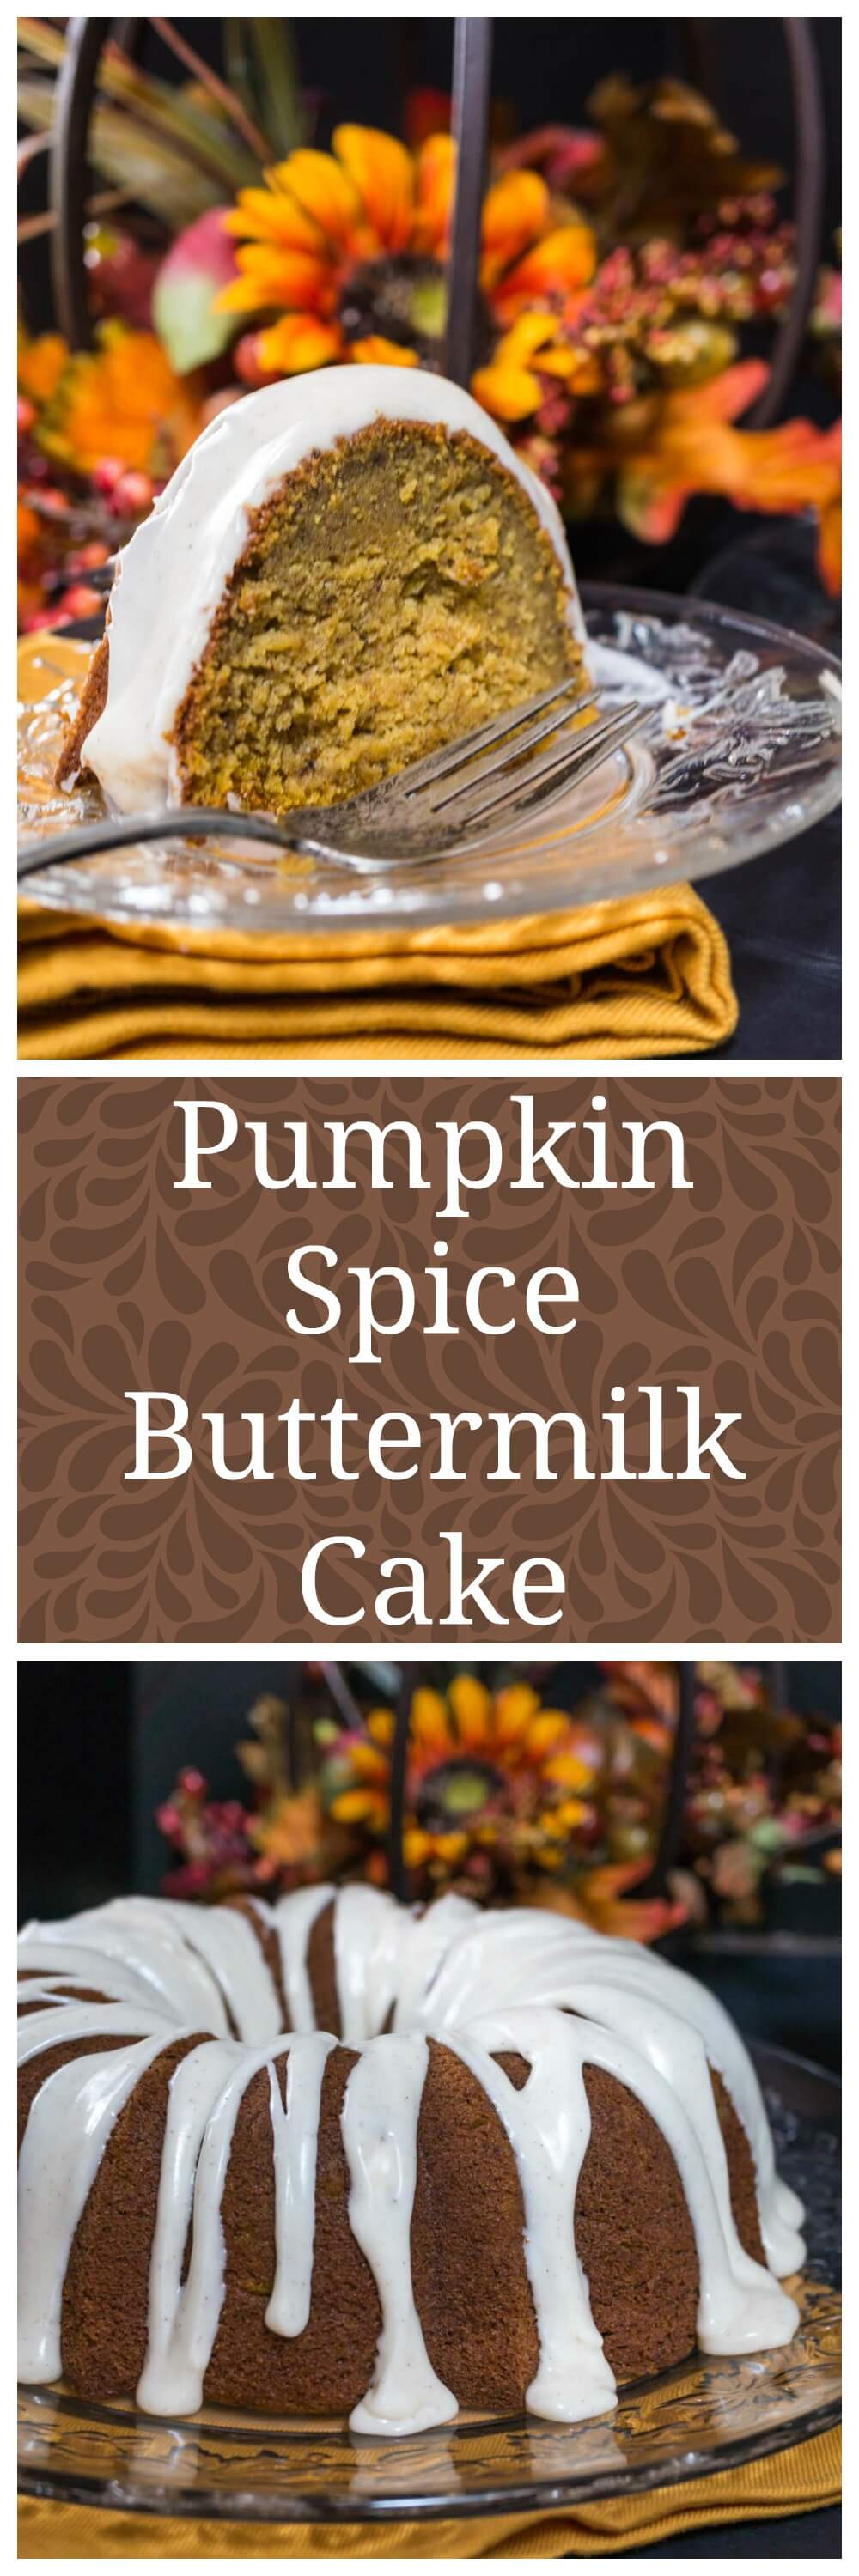 Pumpkin Spice Buttermilk Cake with a warm Cinnamon Cream Cheese icing is perfect for Fall entertaining, Holidays or any occasion | Hostess At Heart.com